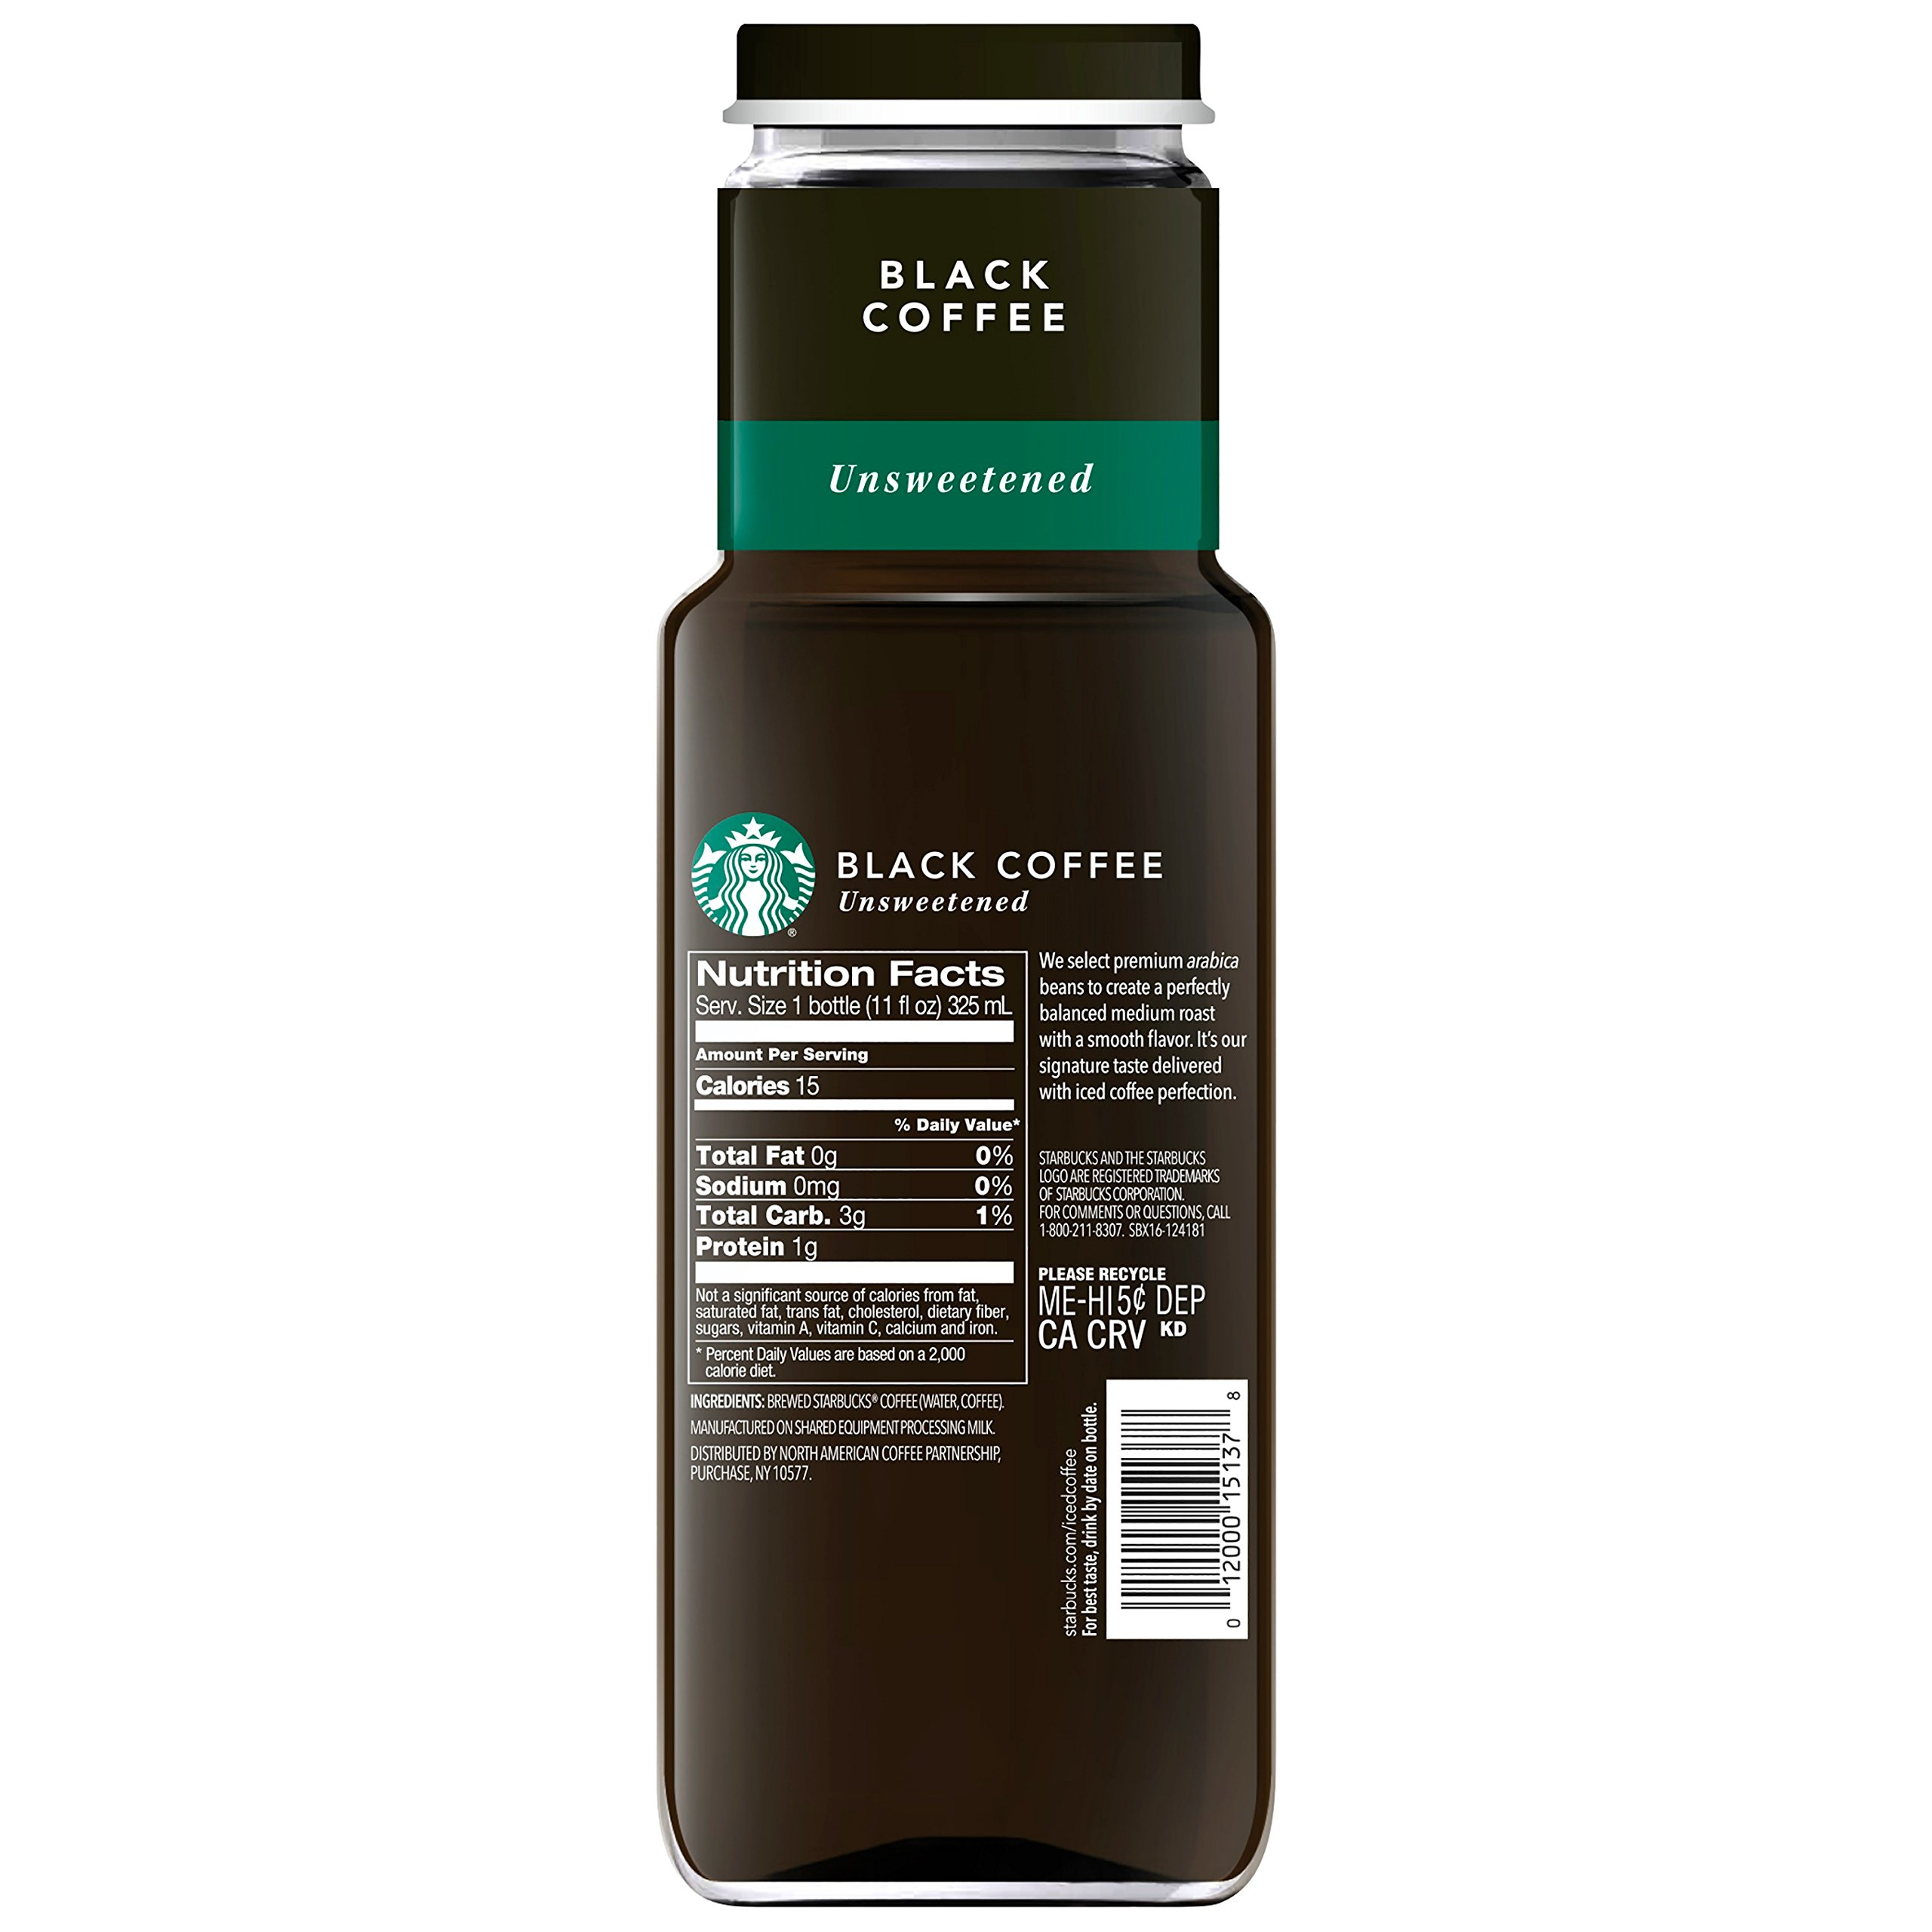 Starbucks Iced Coffee, Black Unsweetened, 11oz Bottle by Starbucks (Image #2)